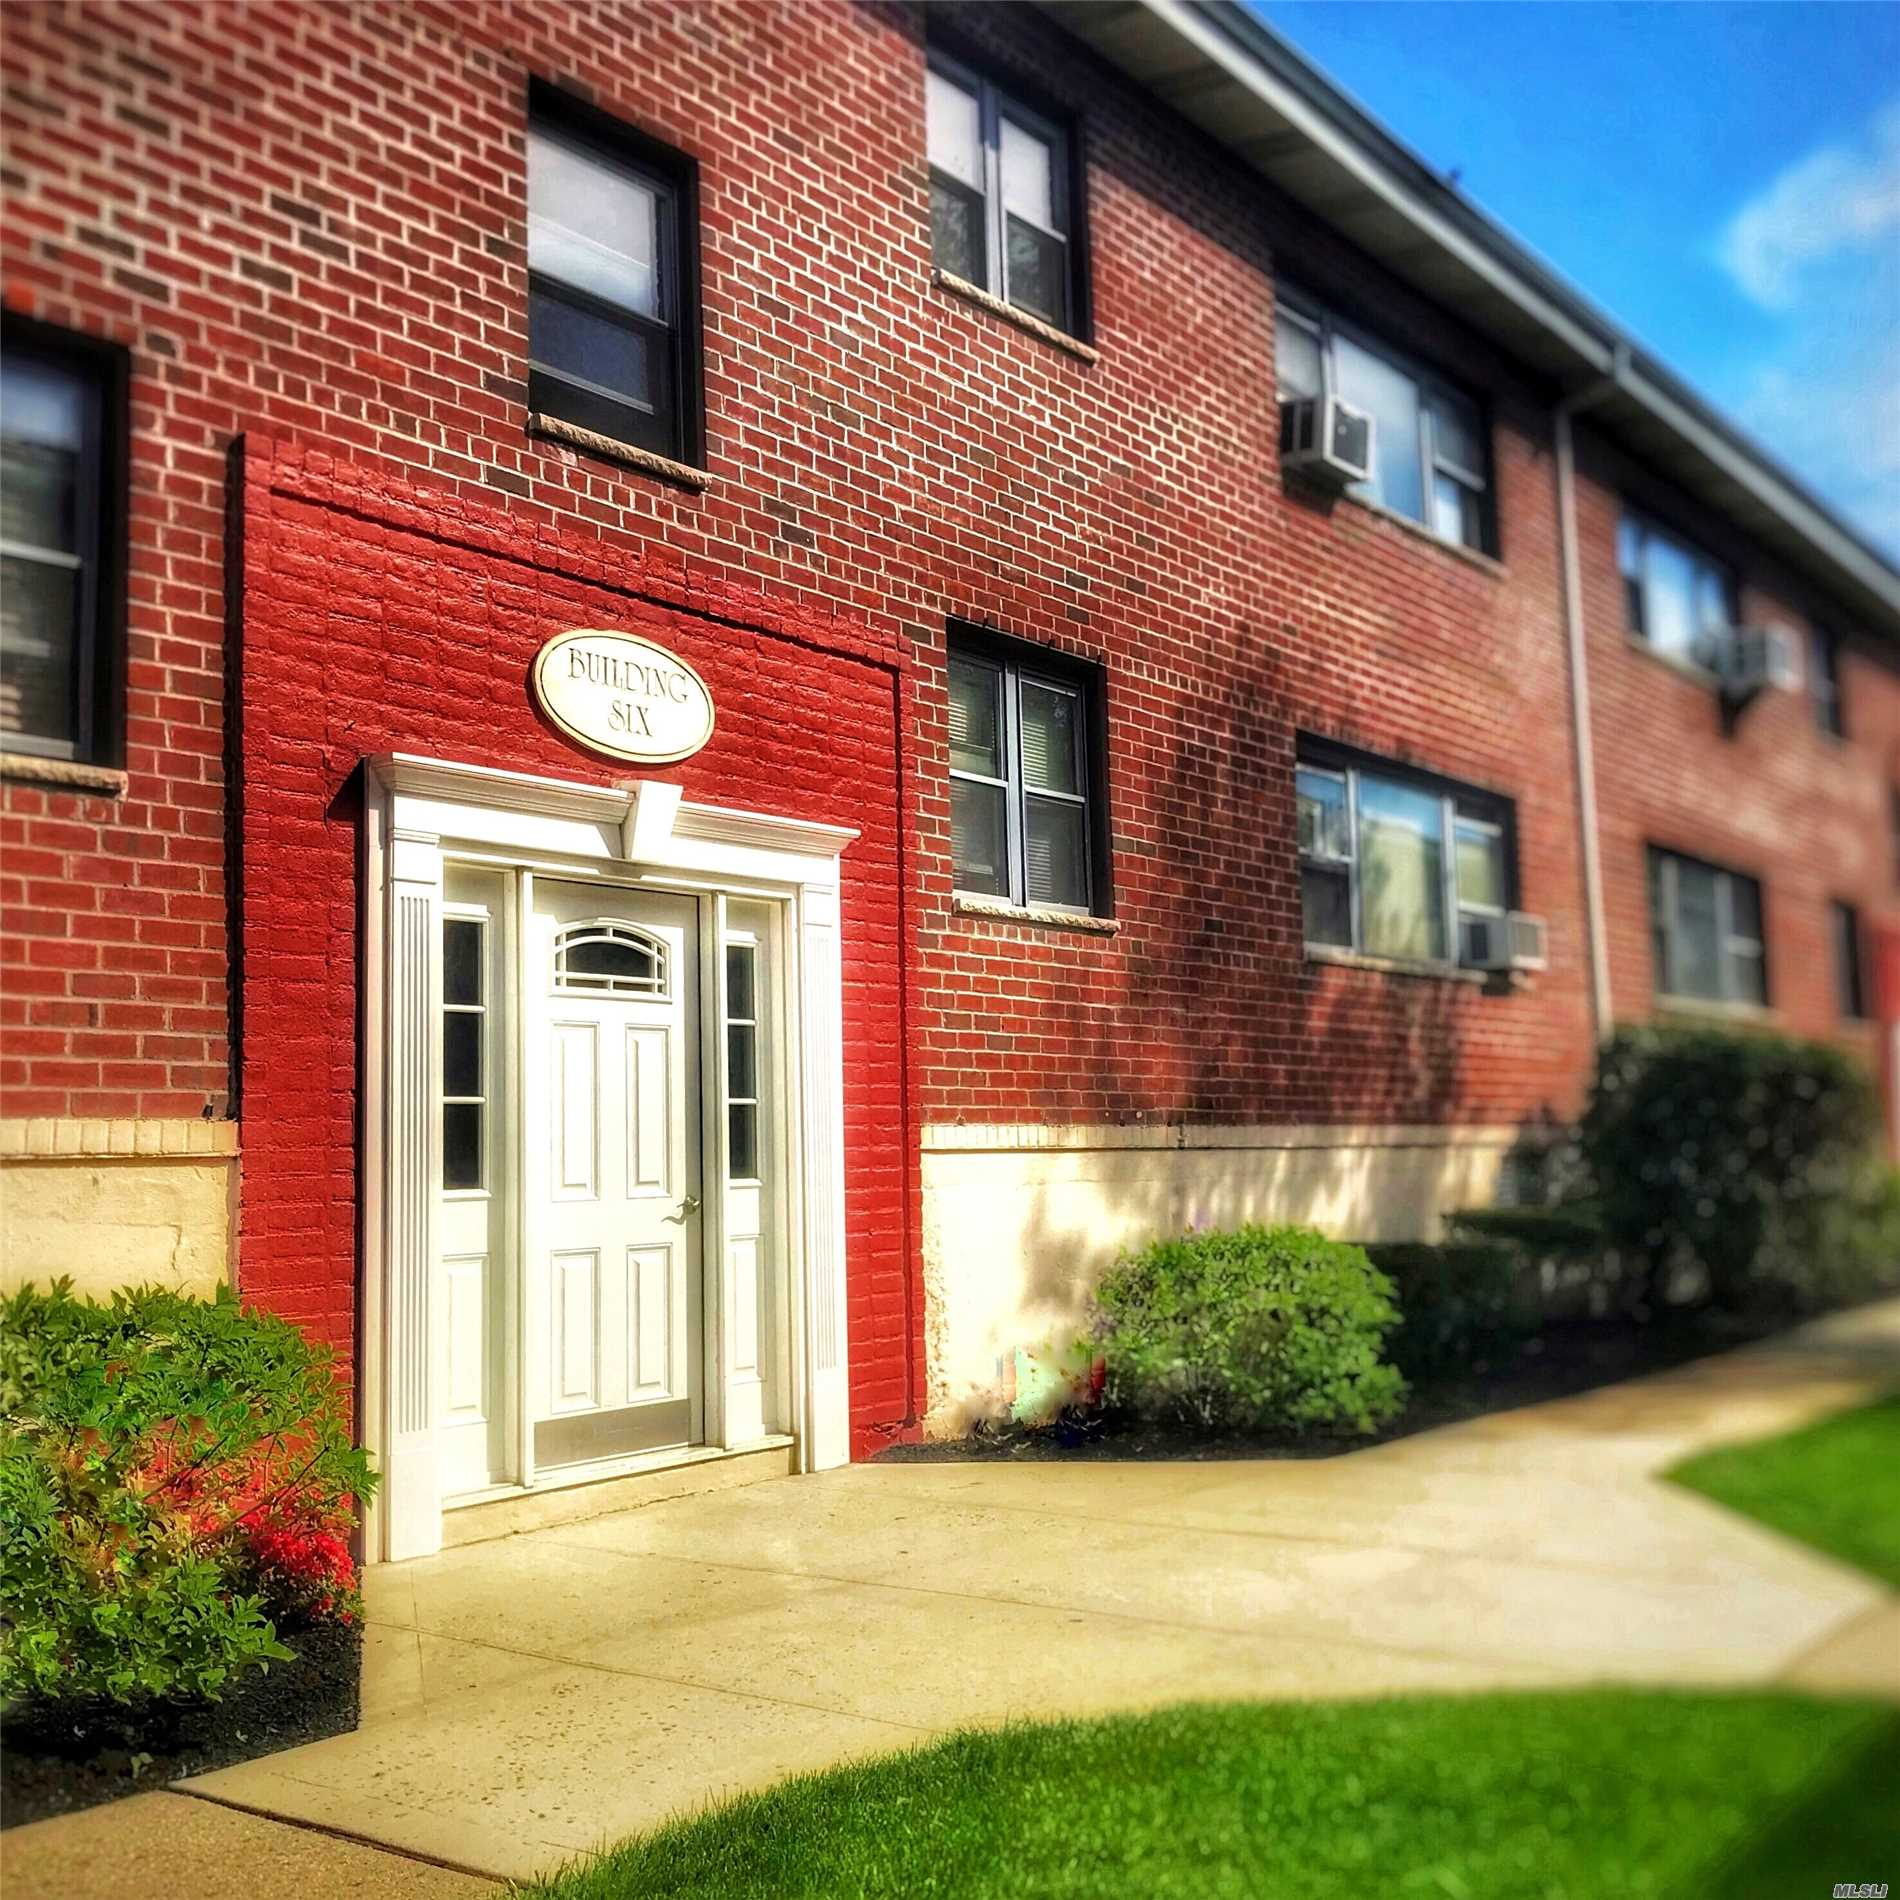 Welcome to Floral Park! Come See This Sunny, One Bedroom Apartment with Beautiful, Hardwood Floors, Lots of Windows and Closets - Custom California Closets! Great Location, Conveniently close proximity : LIRR, Shopping, Schools, Public Library, and Village Amenities. Please Note: Sale may be subject to terms & conditions of an offering plan. All Info To Be Verified by Selling Agent. Max Financing 80%.